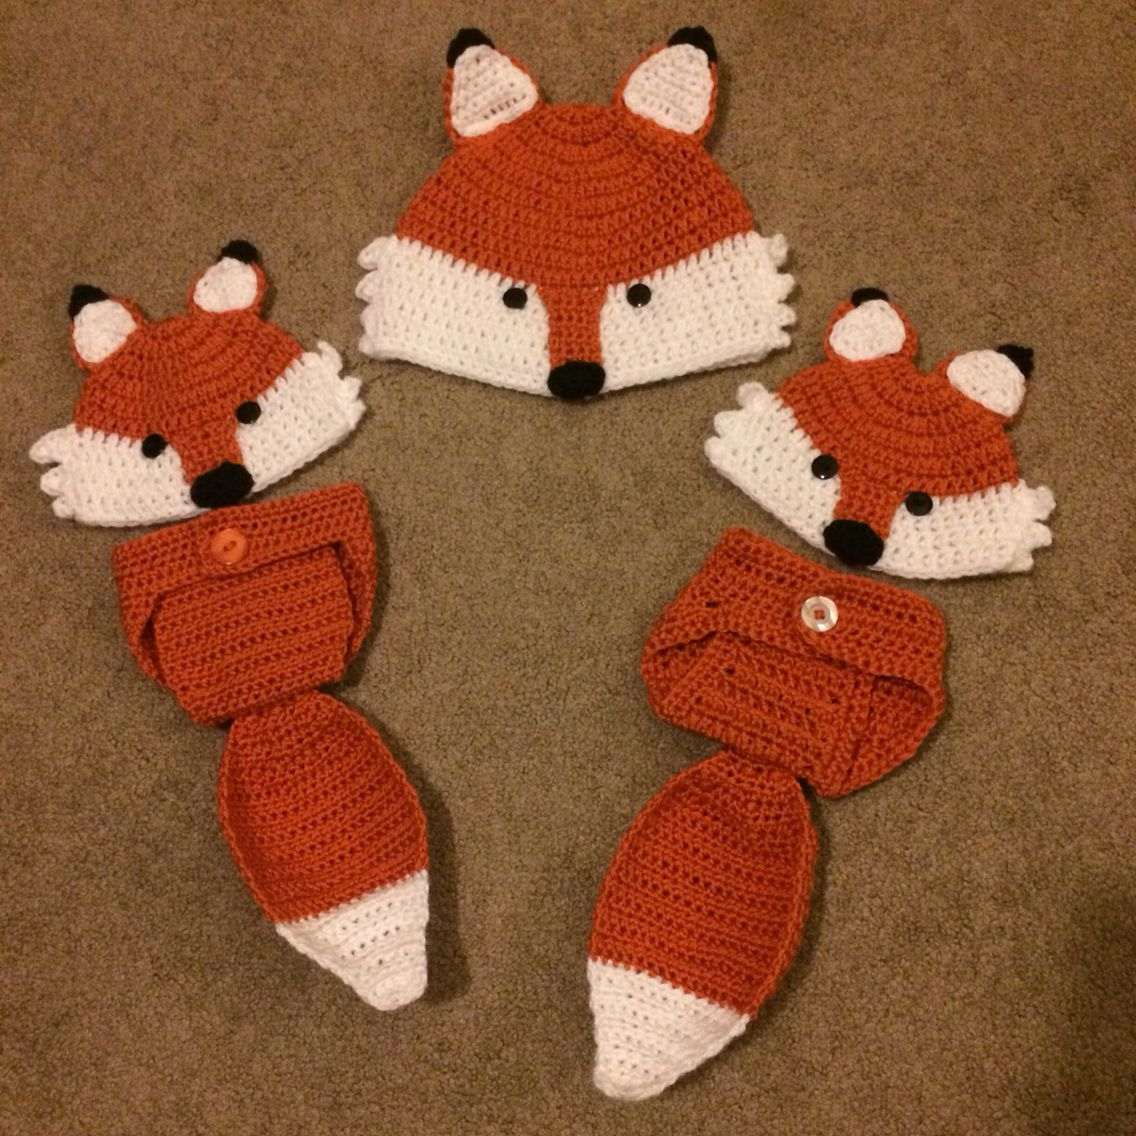 Crochet Fox Hats Amp Diaper Covers With Tails I Made